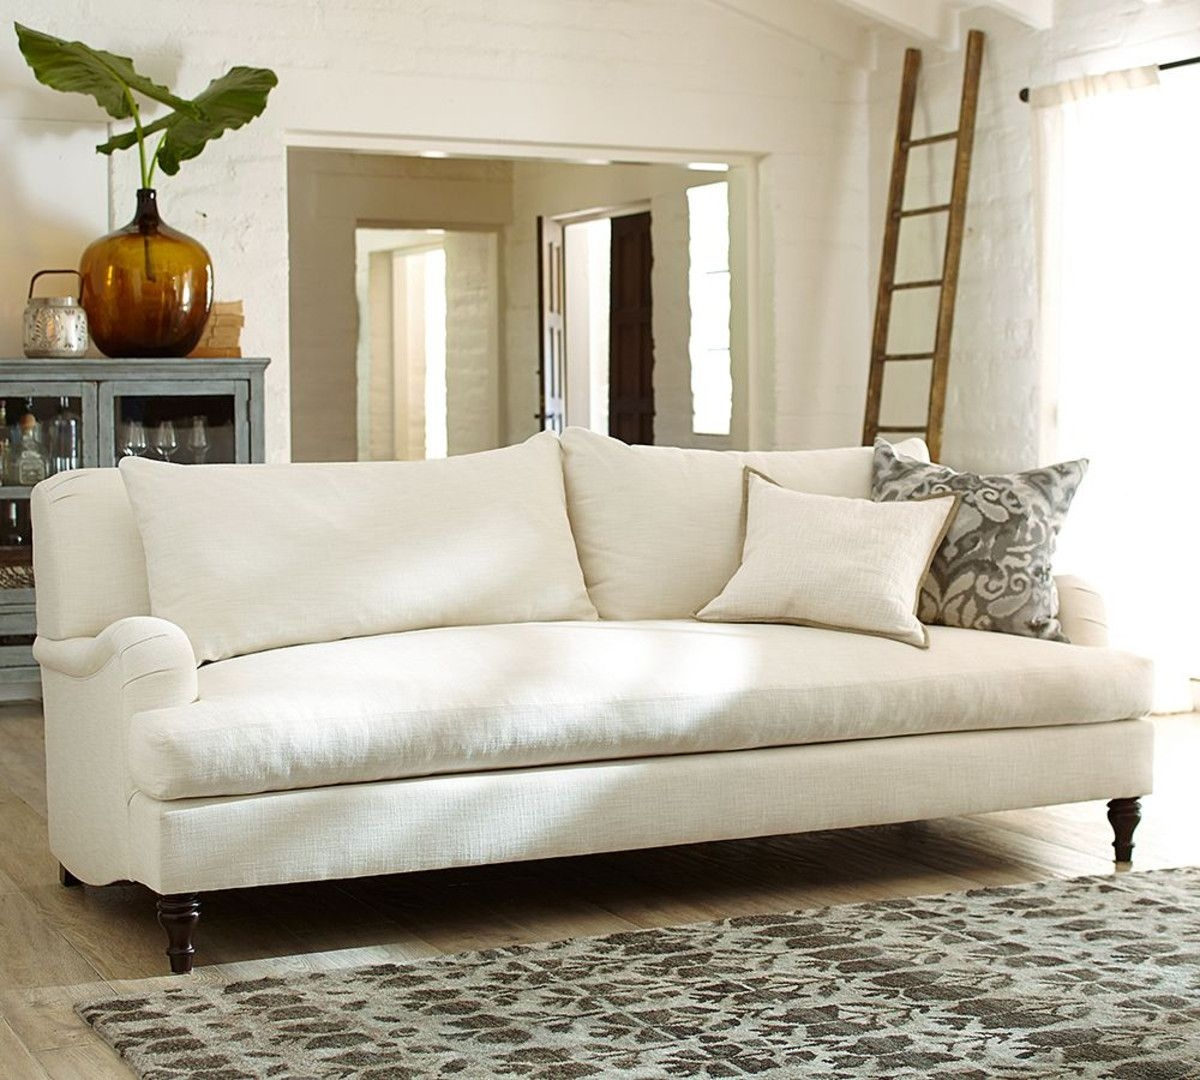 Delicieux Carlisle Upholstered Sofa Collection 2